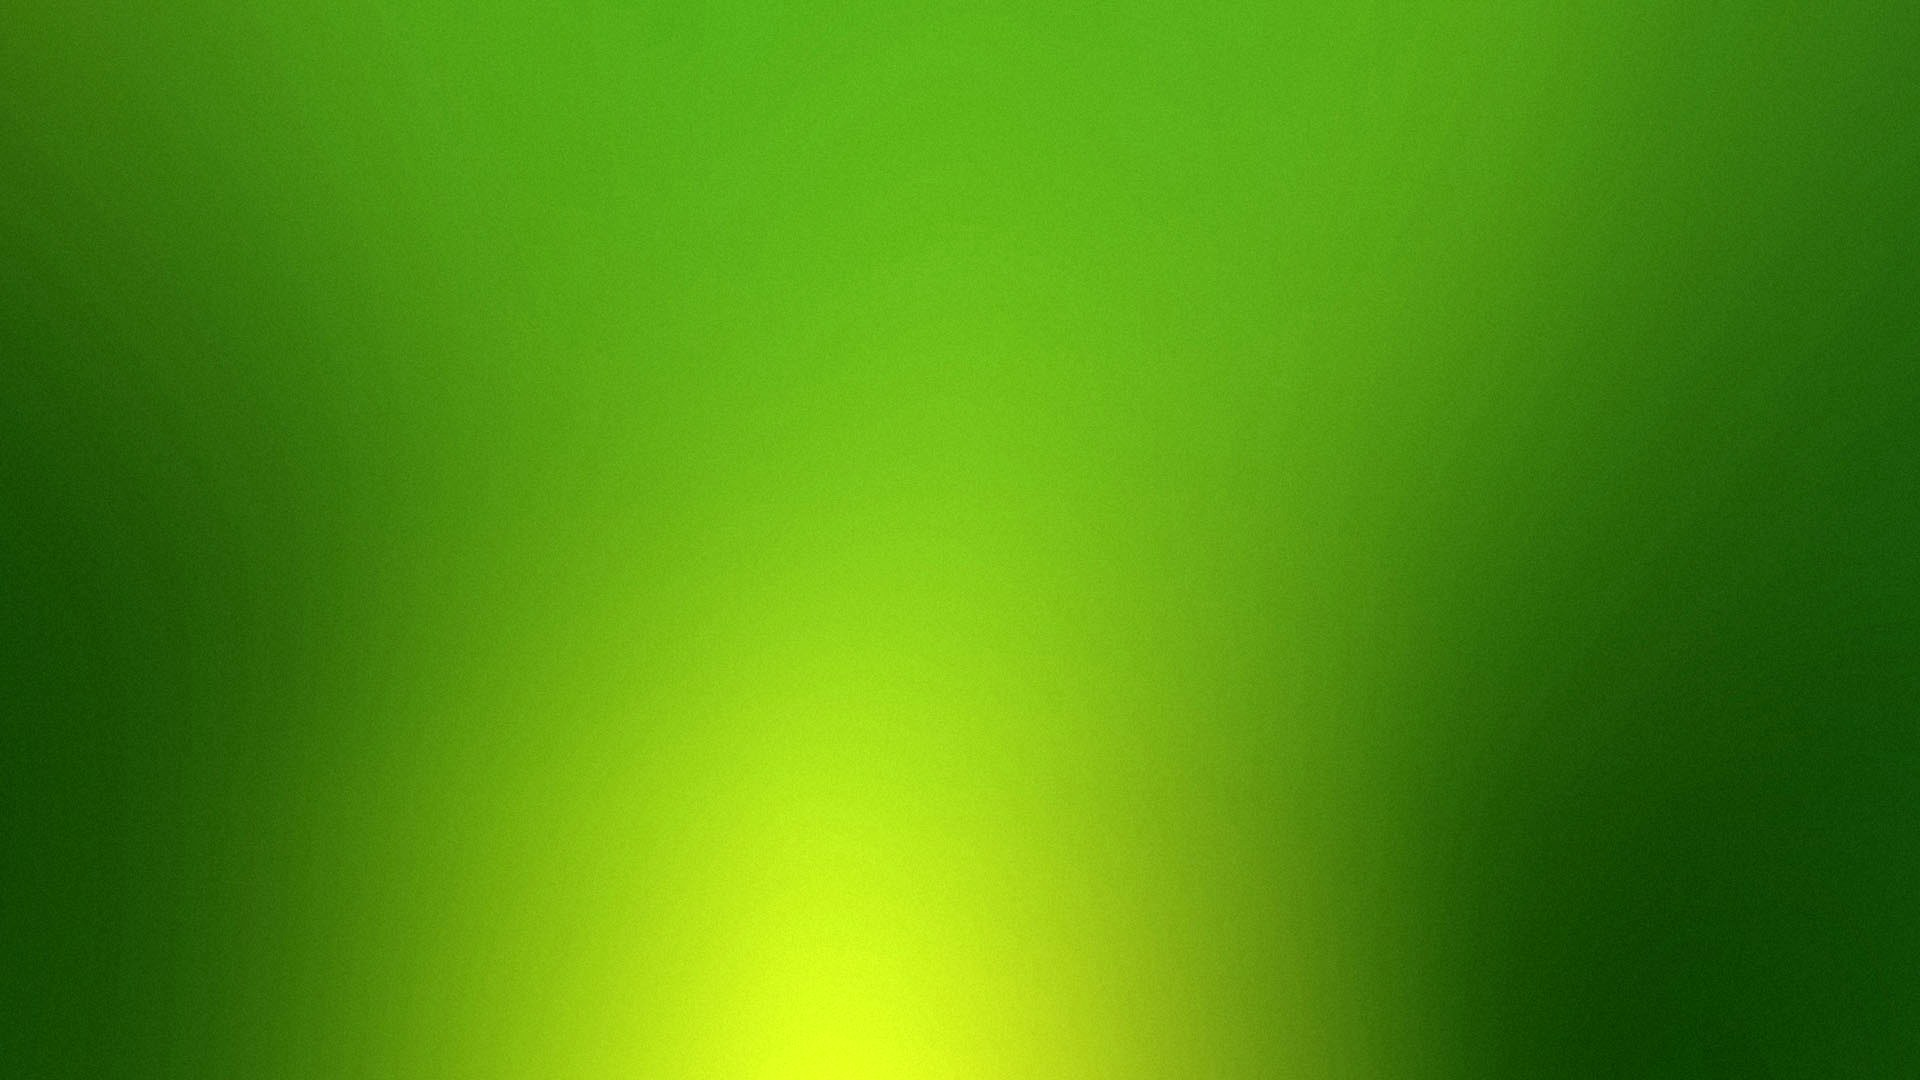 """Download the following Light Green Background 31851 by clicking the orange button positioned underneath the """"Download Wallpaper"""" section."""